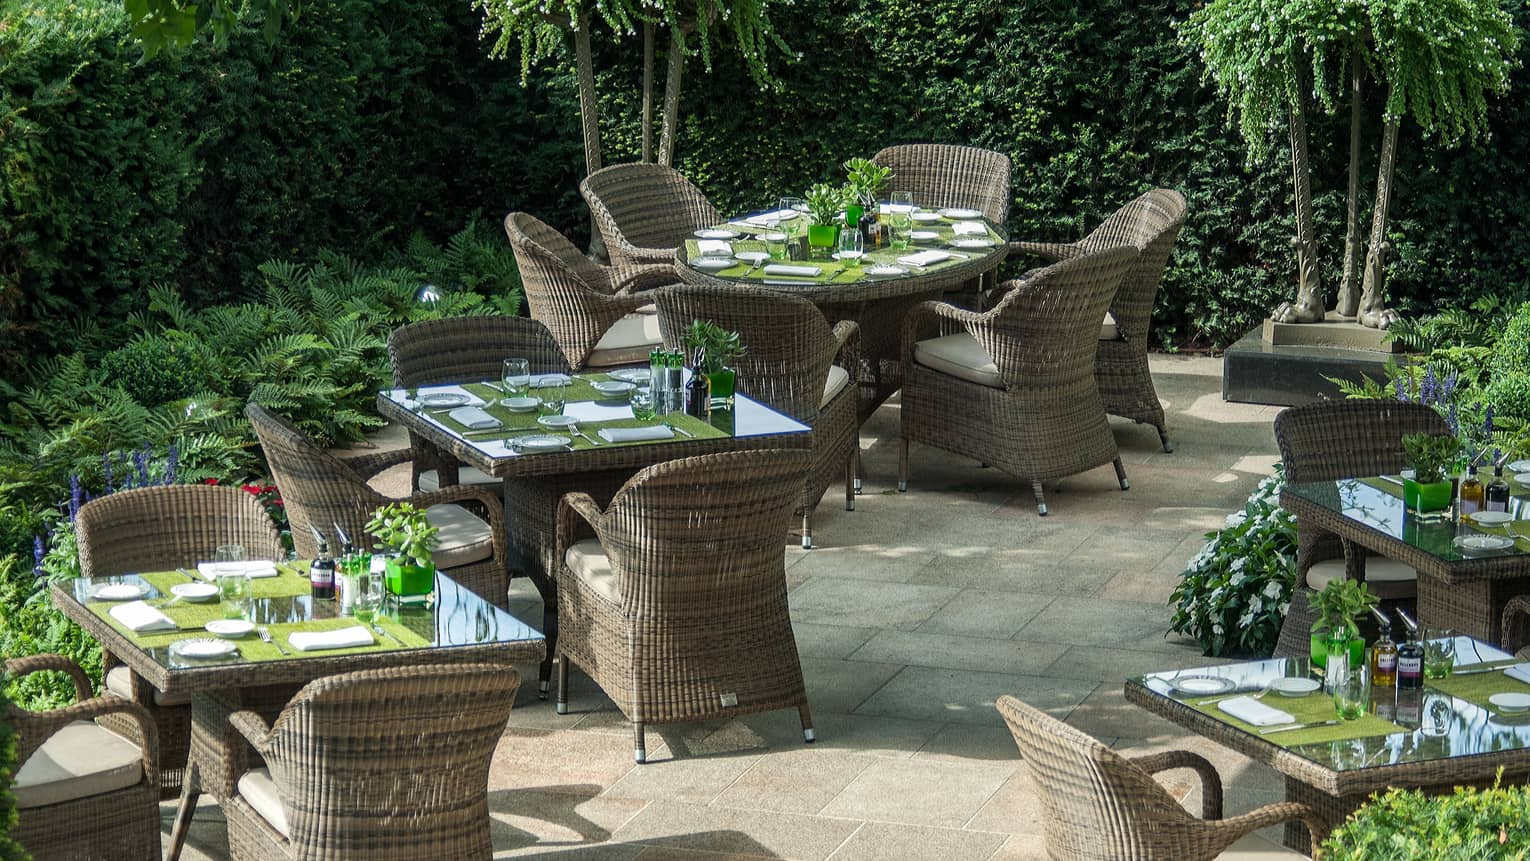 Amaranto restaurant garden patio, large wicker chairs and dining tables